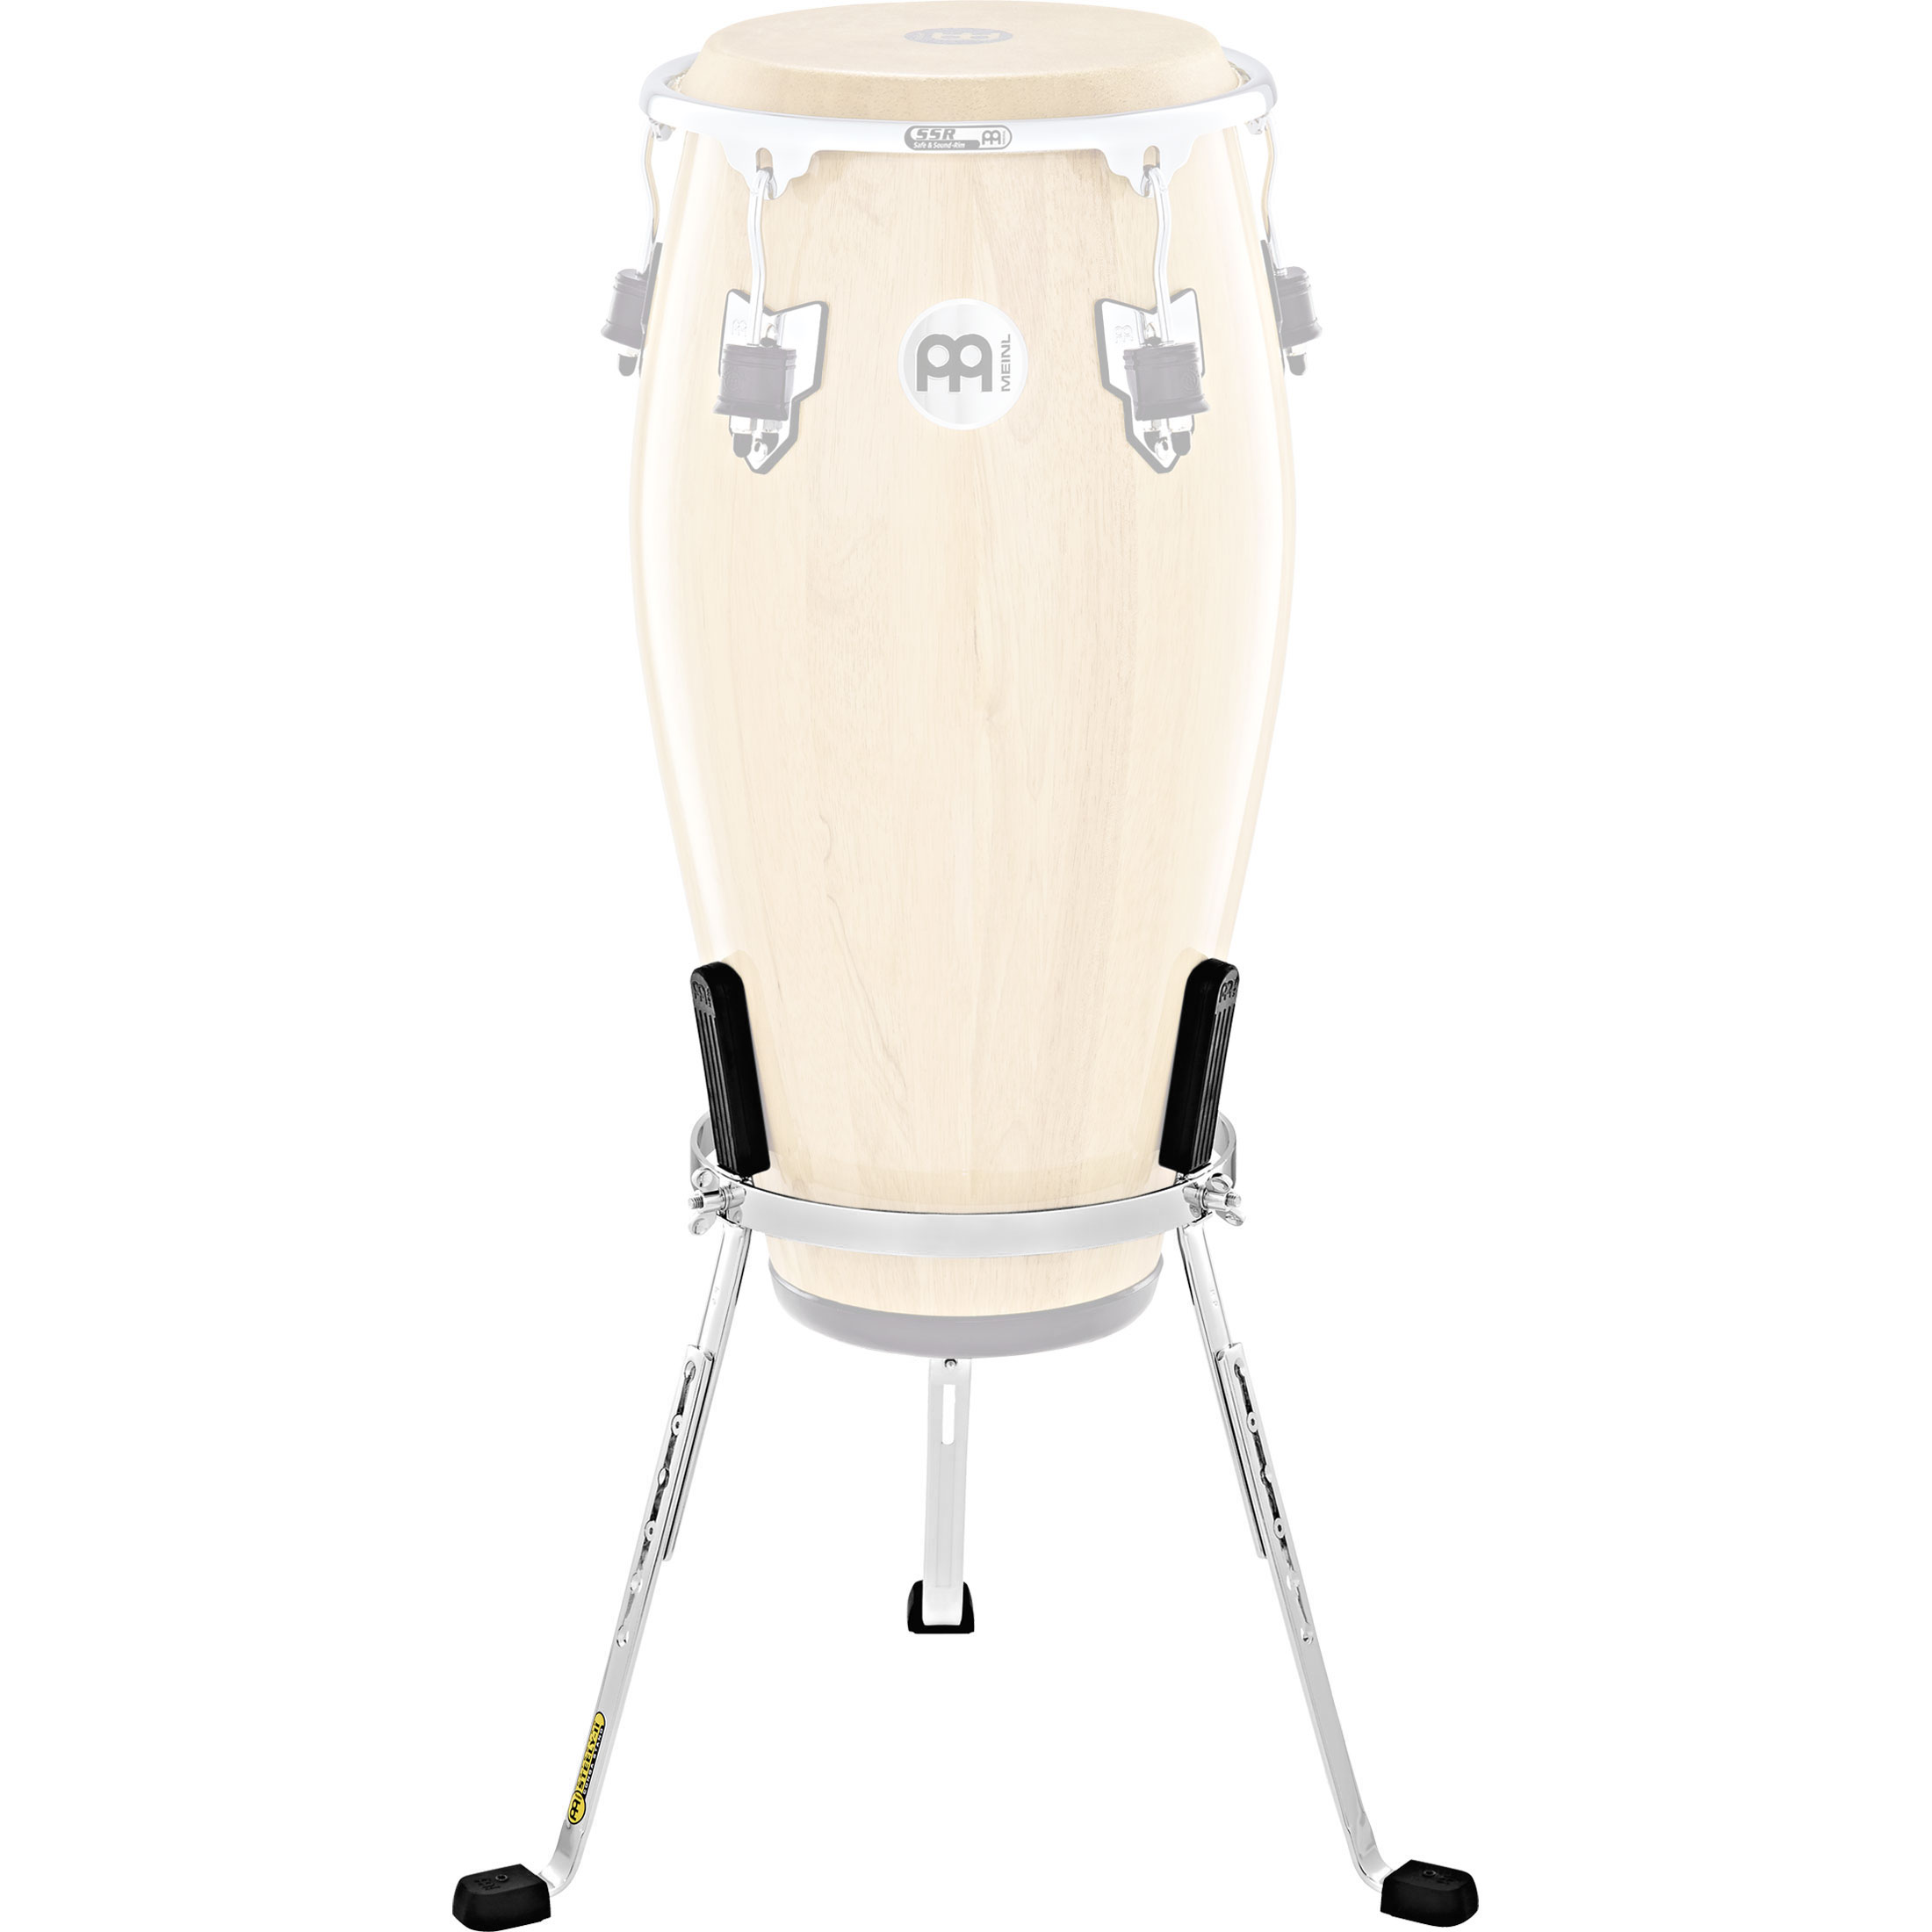 """Meinl 11.75"""" Marathon Exclusive Steely II Conga Stand in Chrome"""